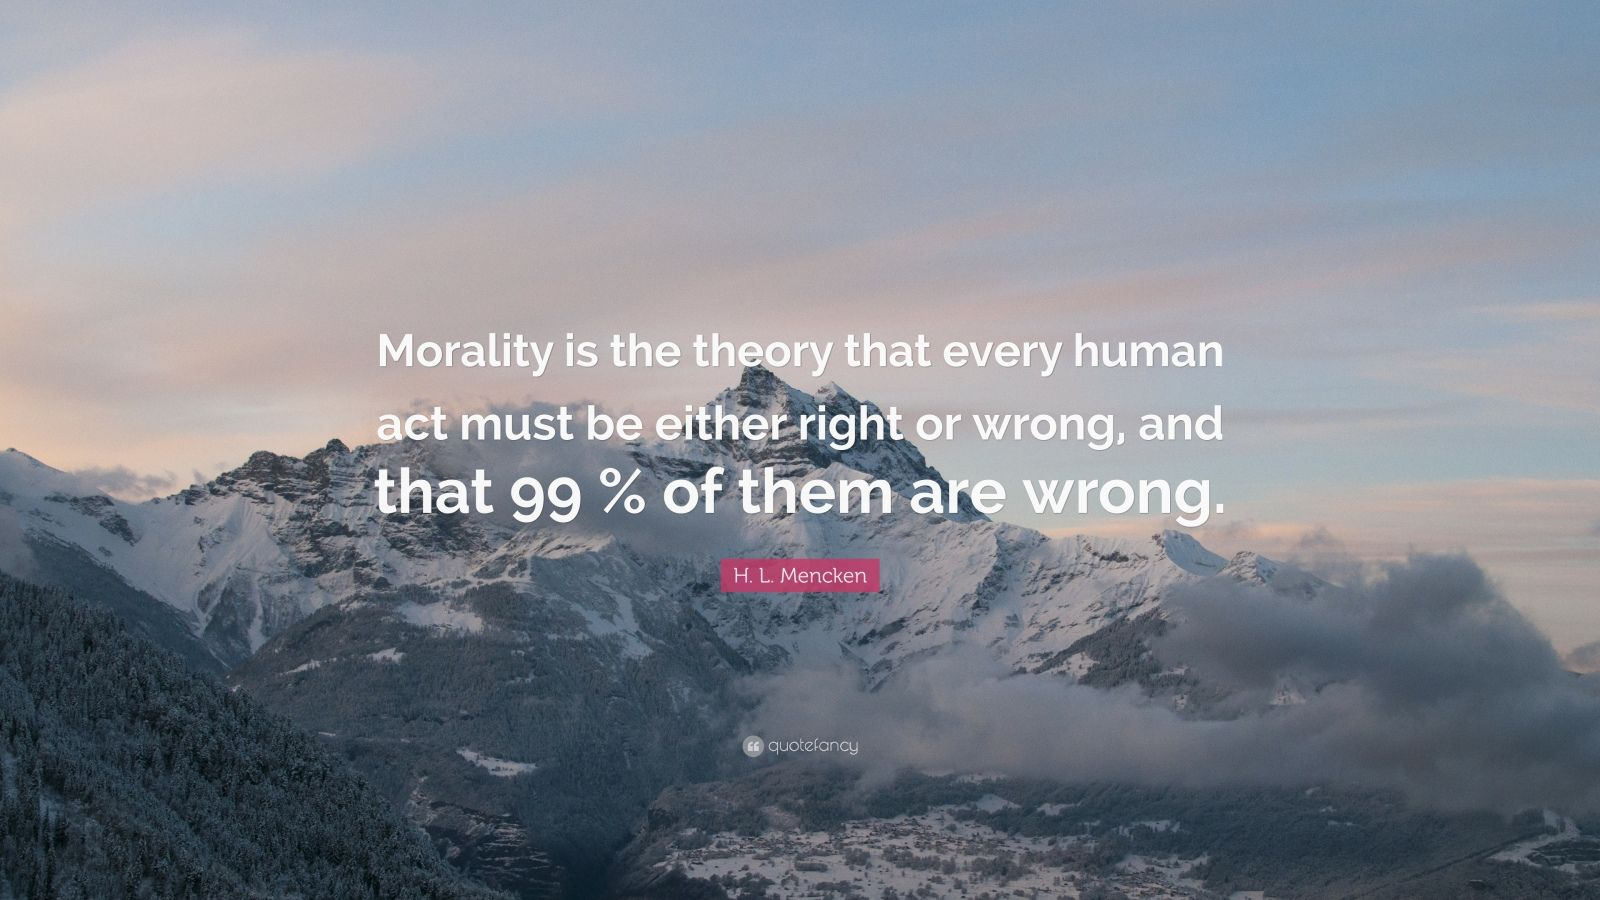 """H. L. Mencken Quote: """"Morality is the theory that every human act must be either right or wrong, and that 99 % of them are wrong."""""""